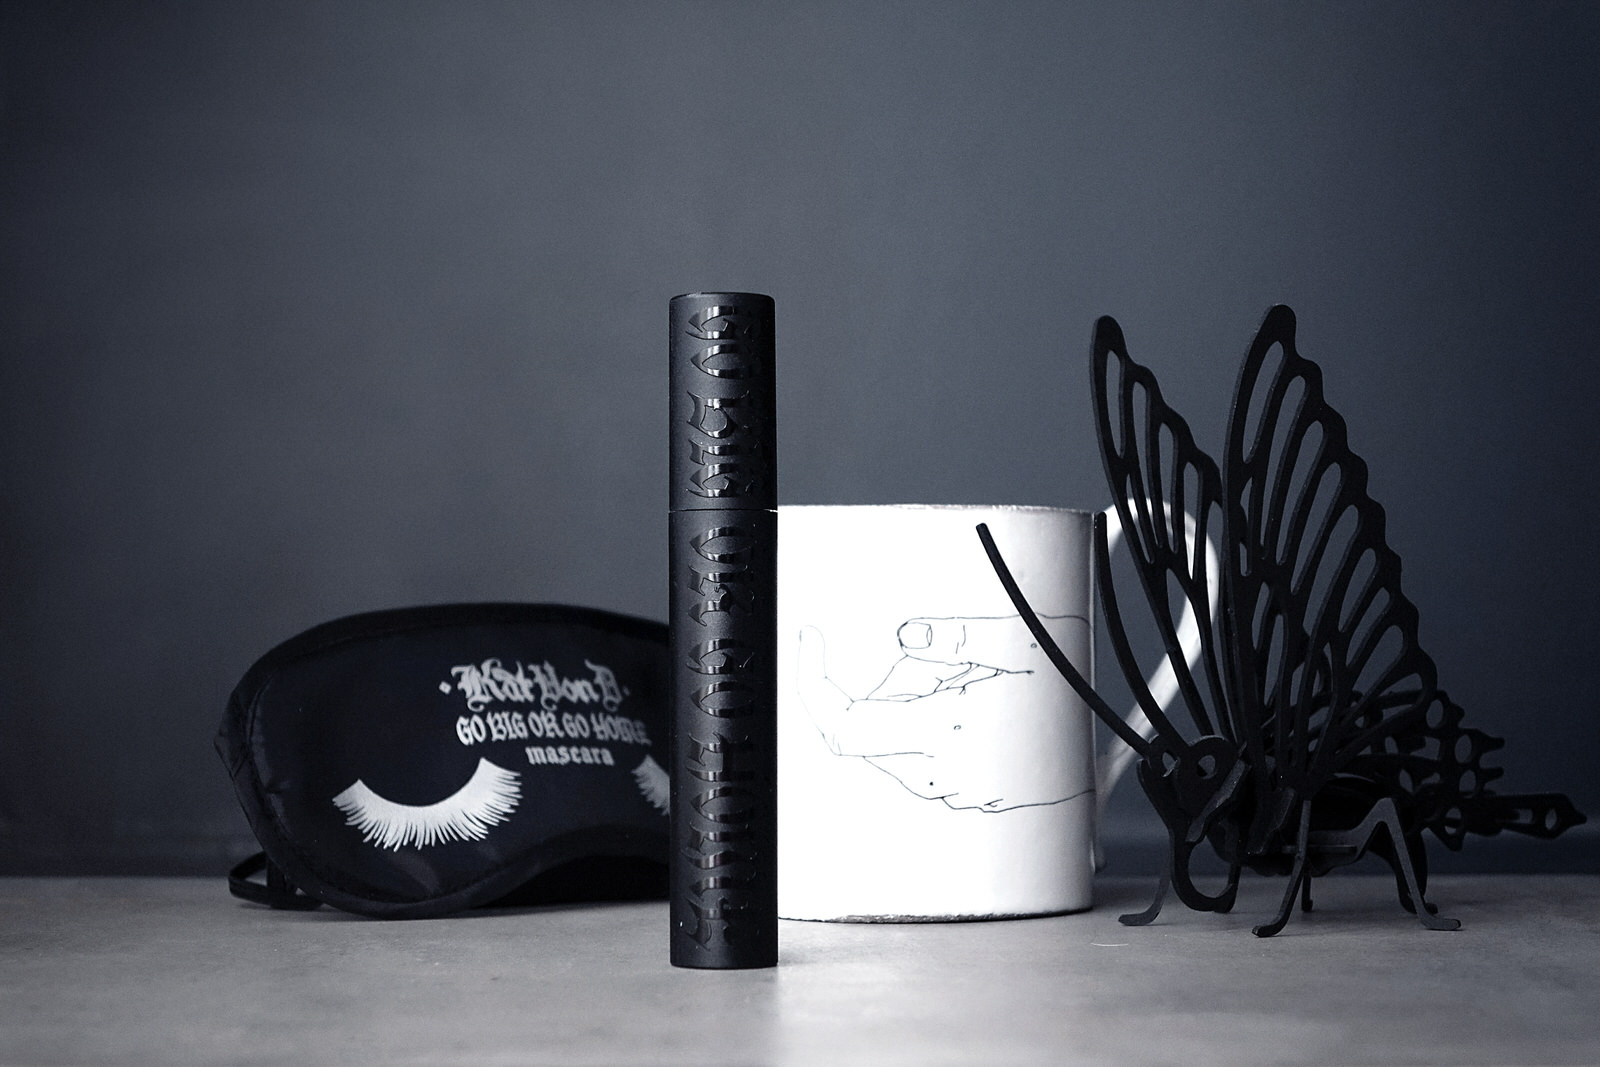 Le nouveau mascara de Kat Von D, Go Big or Go Home